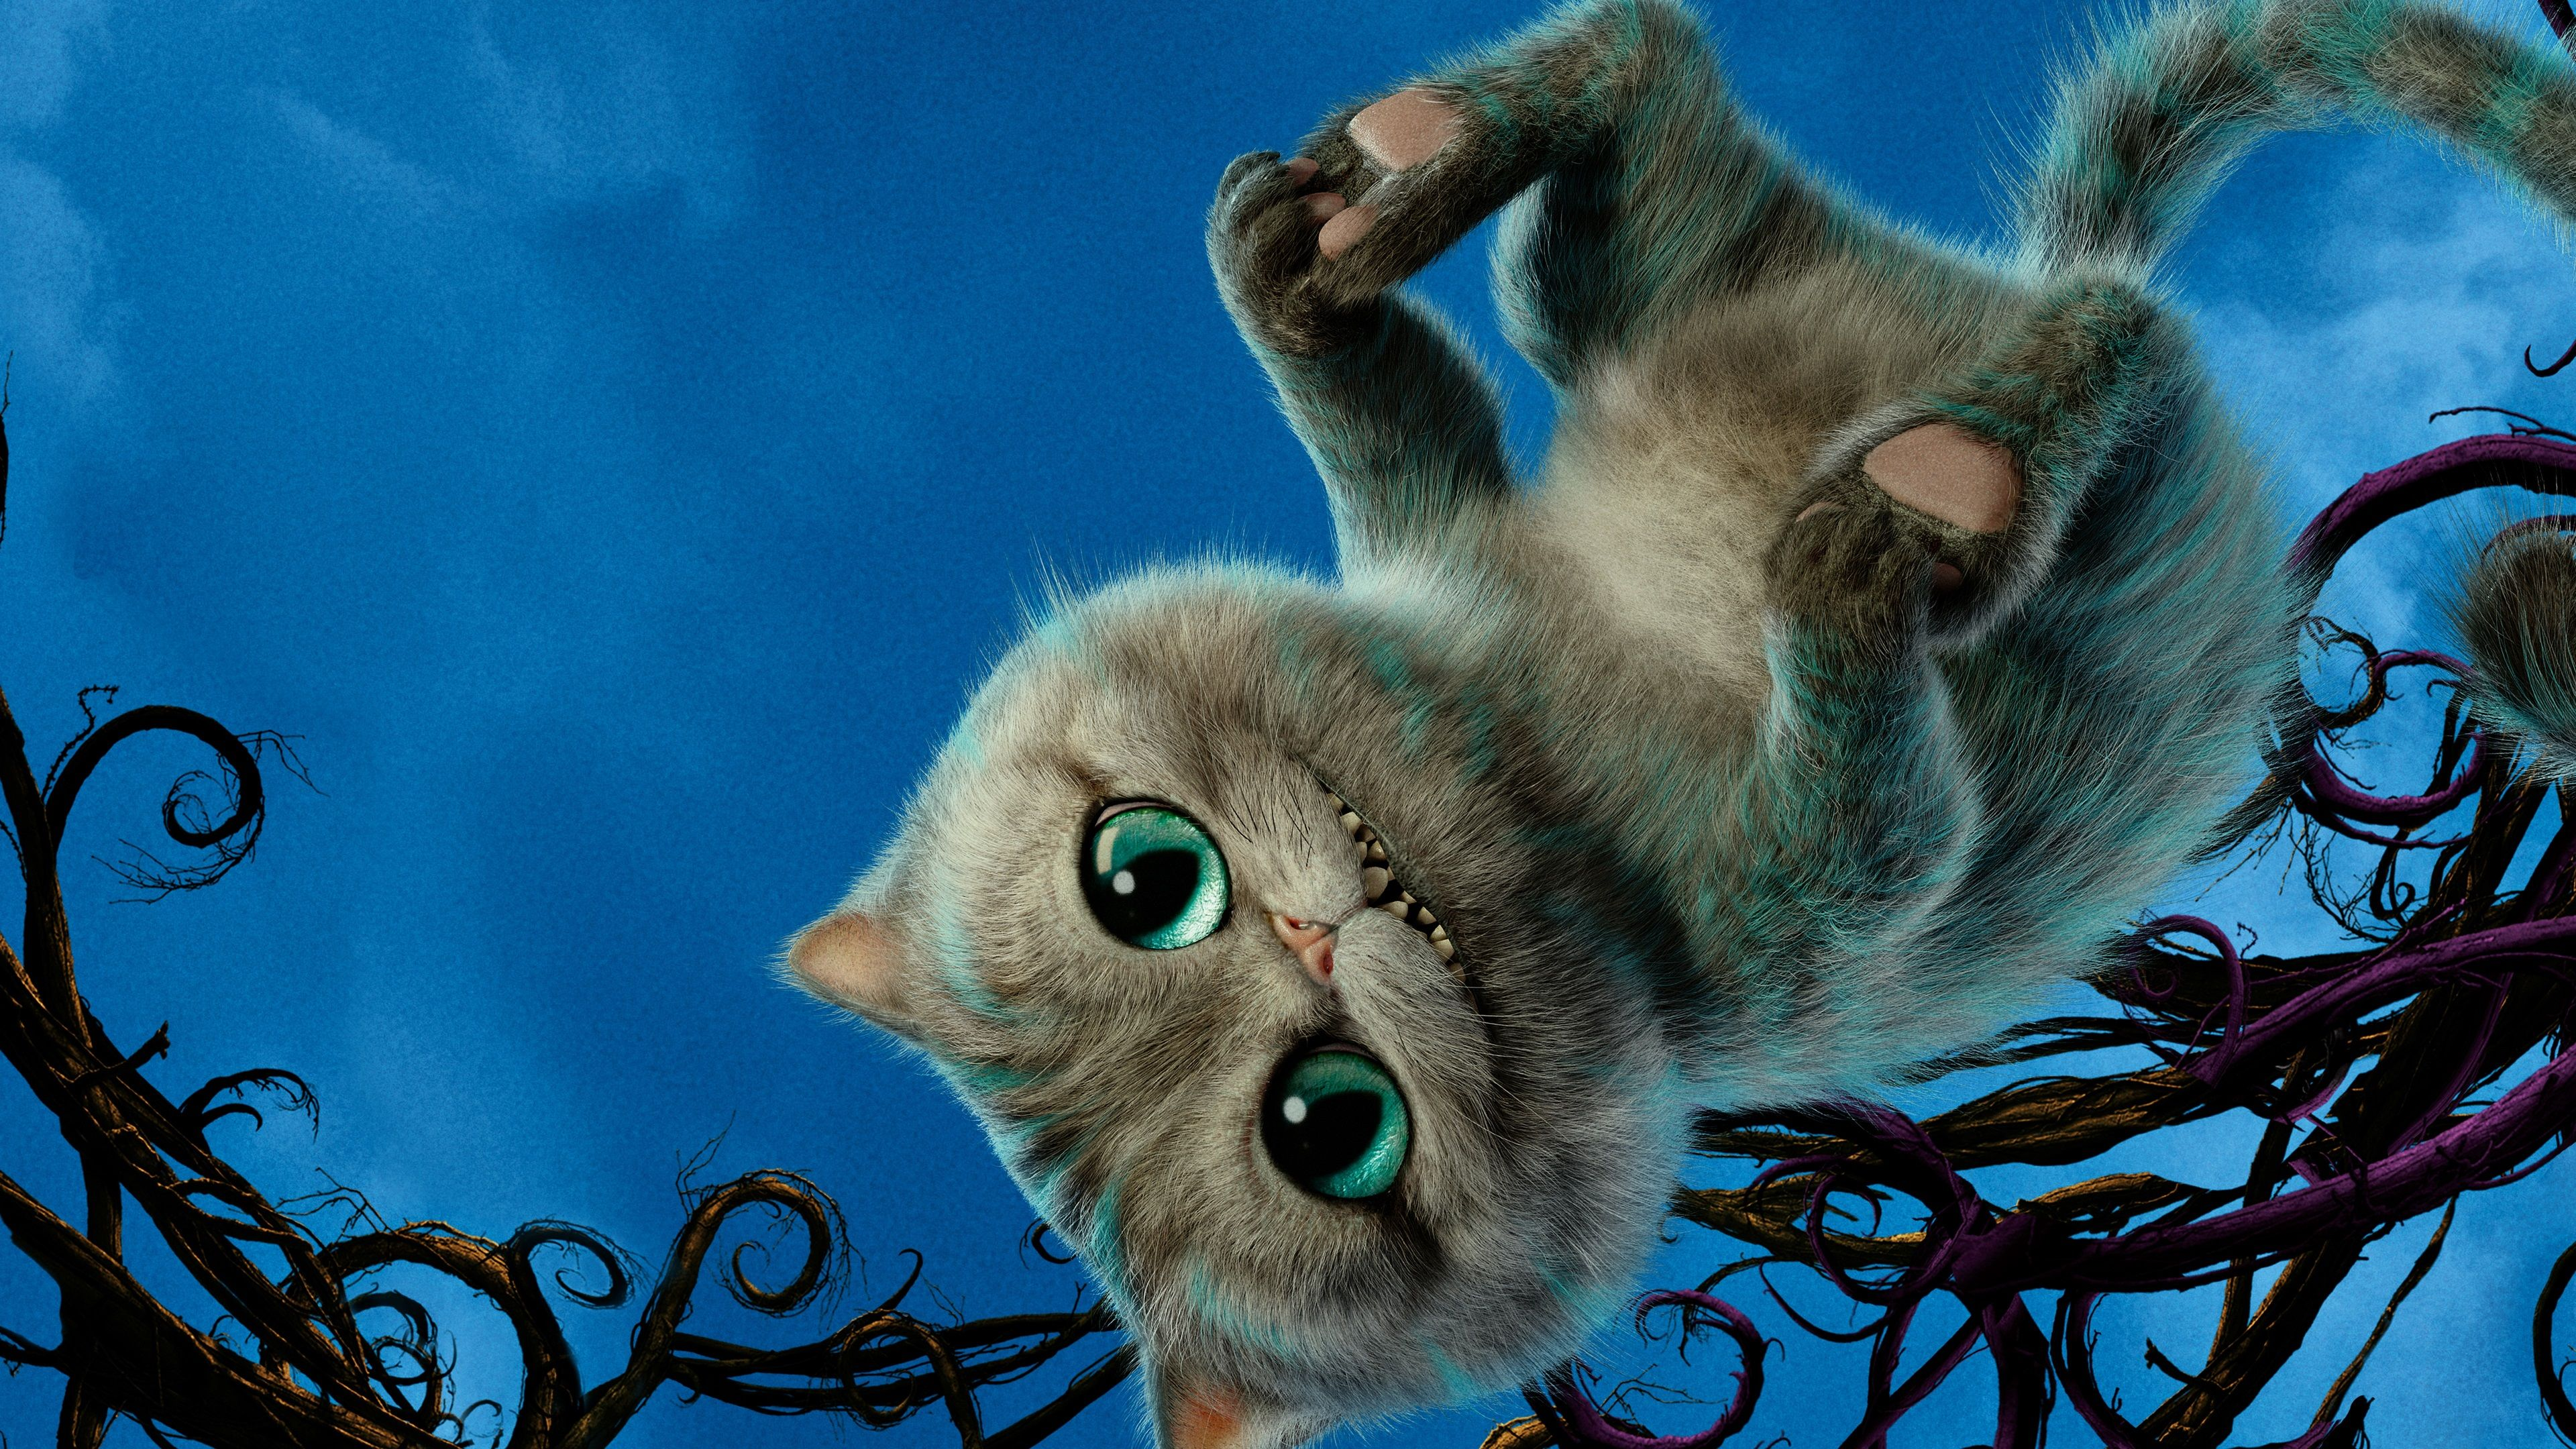 3840x2160 cheshire cat 4k cool images hd